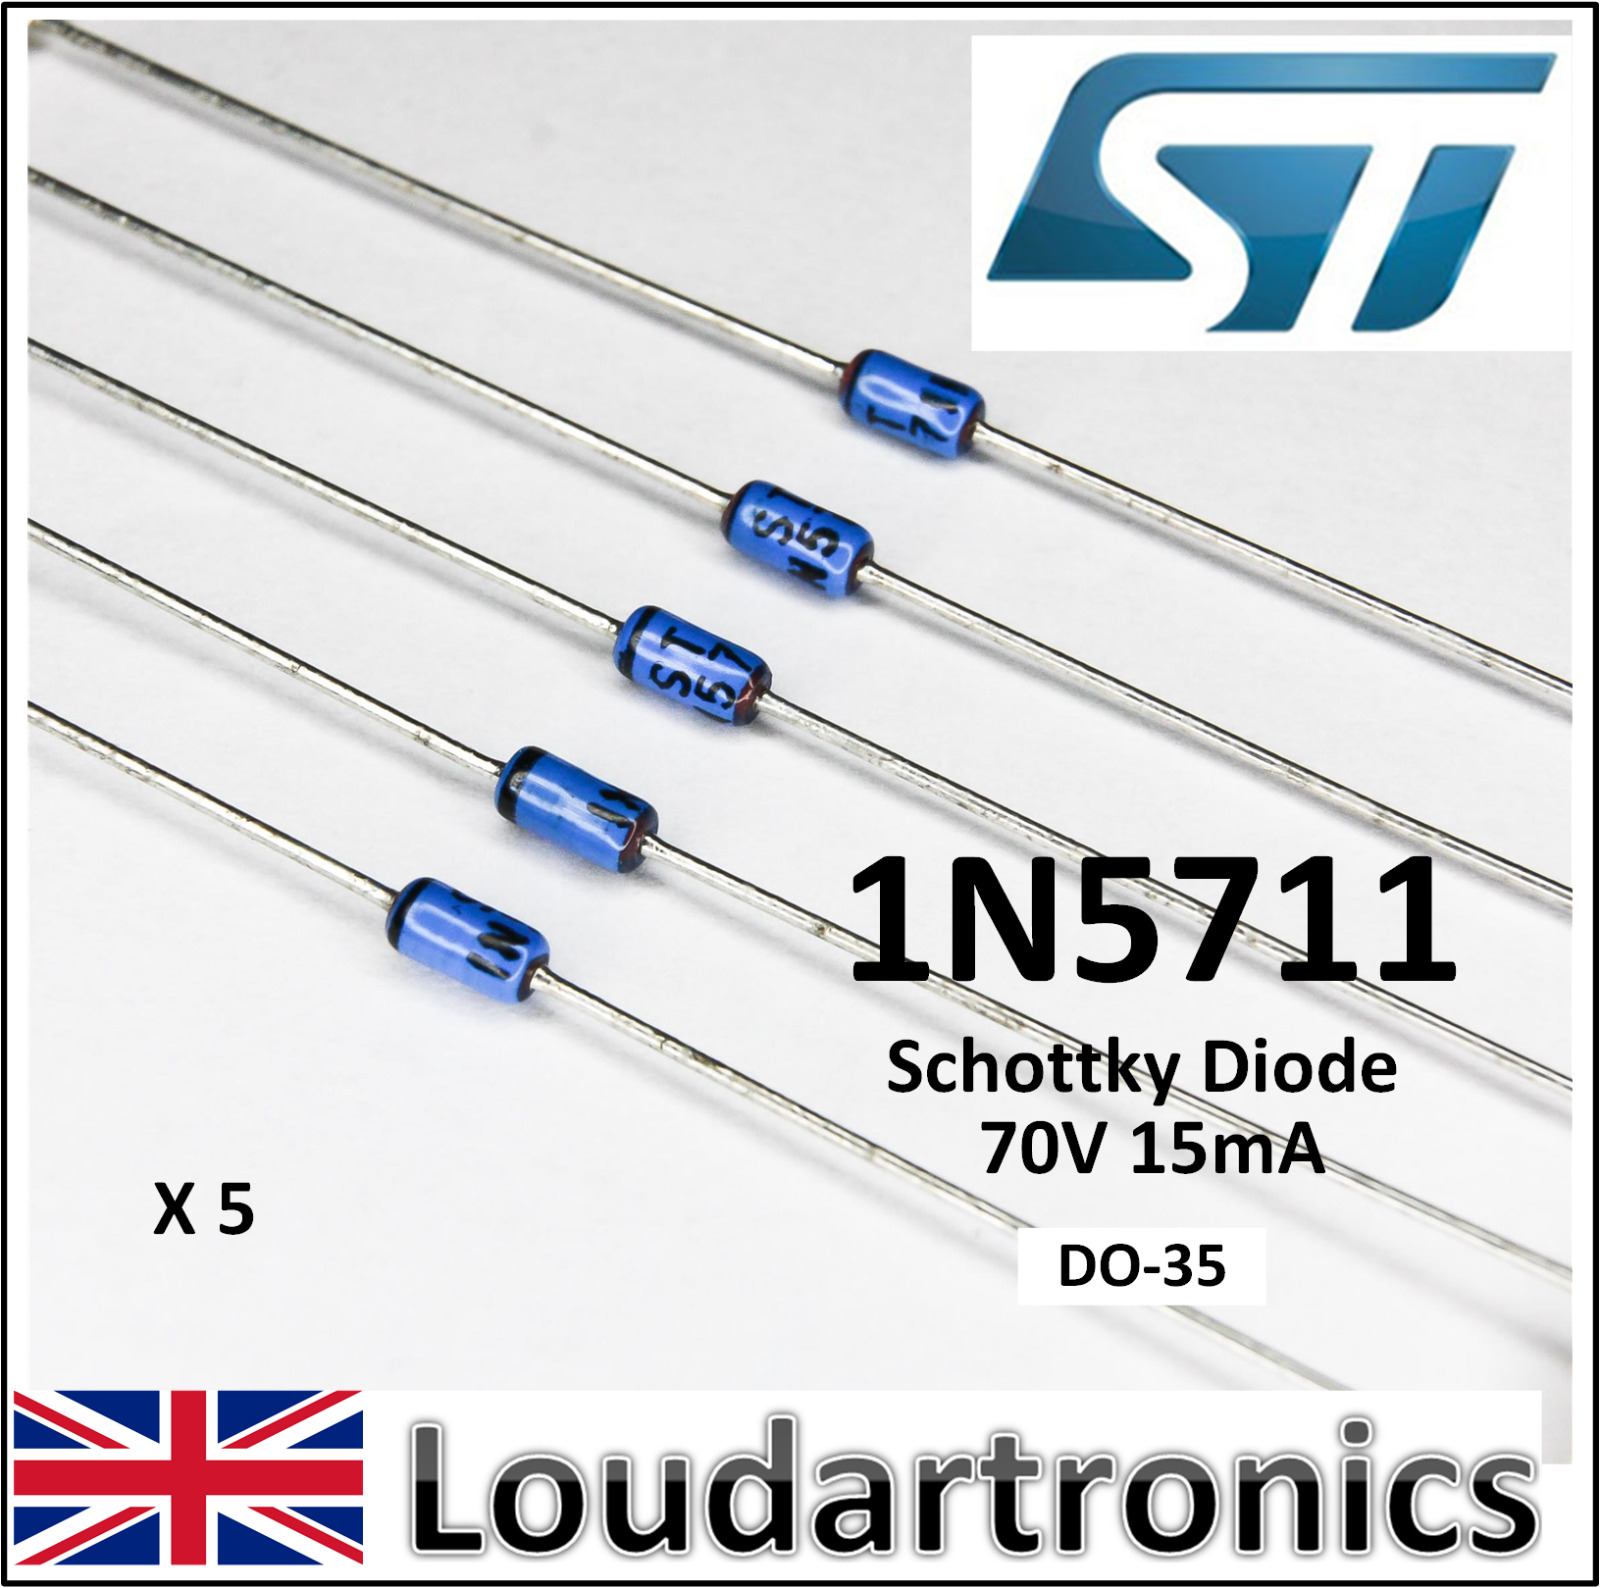 Stmicroelectronics 1n5711 70v 15ma Schottky Diode 175 Picclick Uk Diodes Pin Smd Switching Rectifier 1 Of 1free Shipping